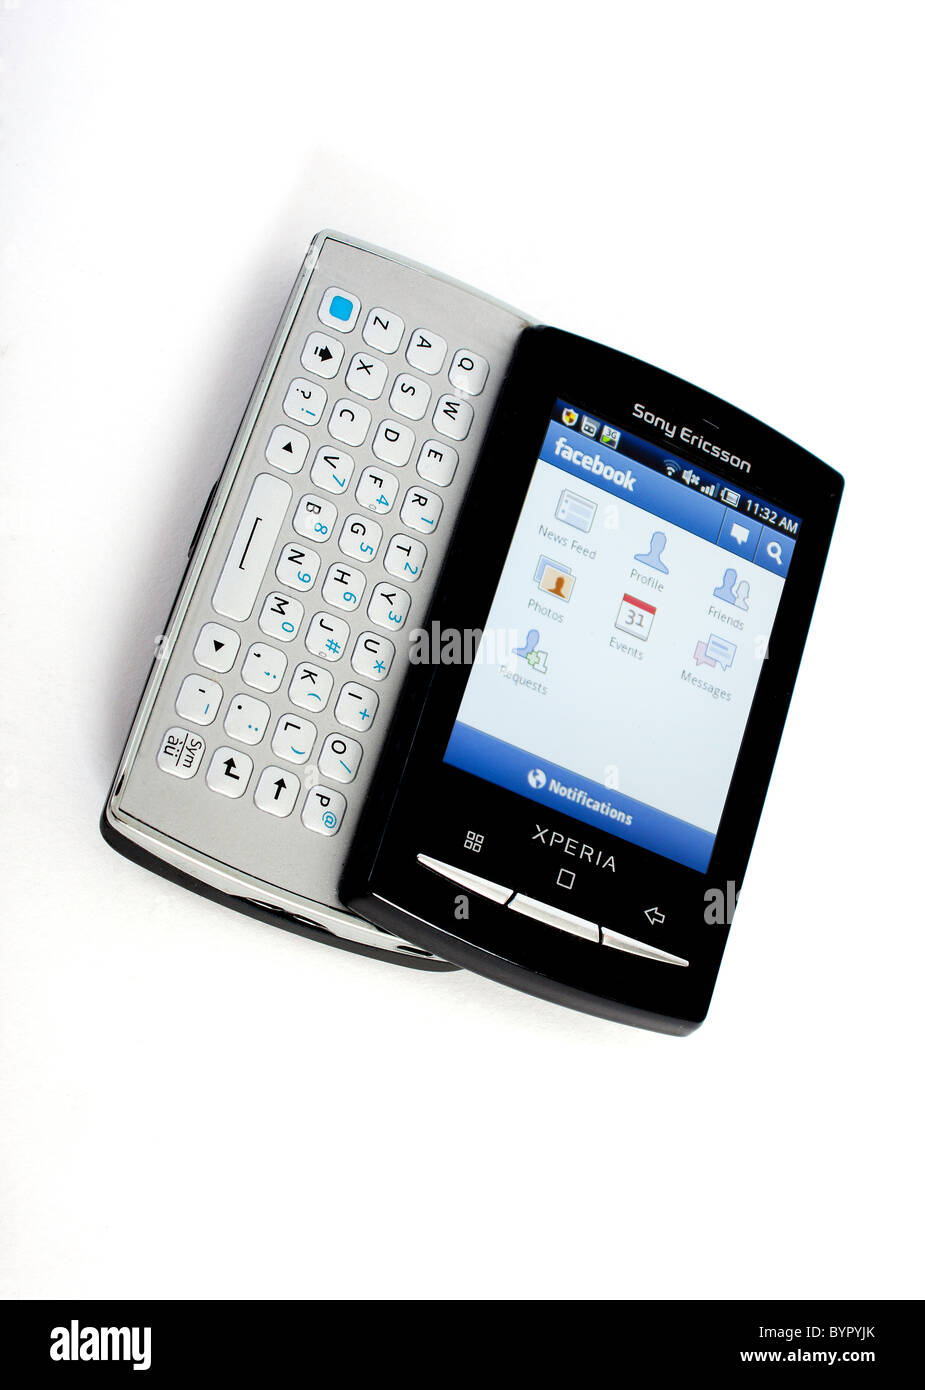 sony ericsson slide phone. stock photo - the new sony ericsson xperia mini pro mobile phone with full slide out qwerty keyboard; displaying google androids facebook